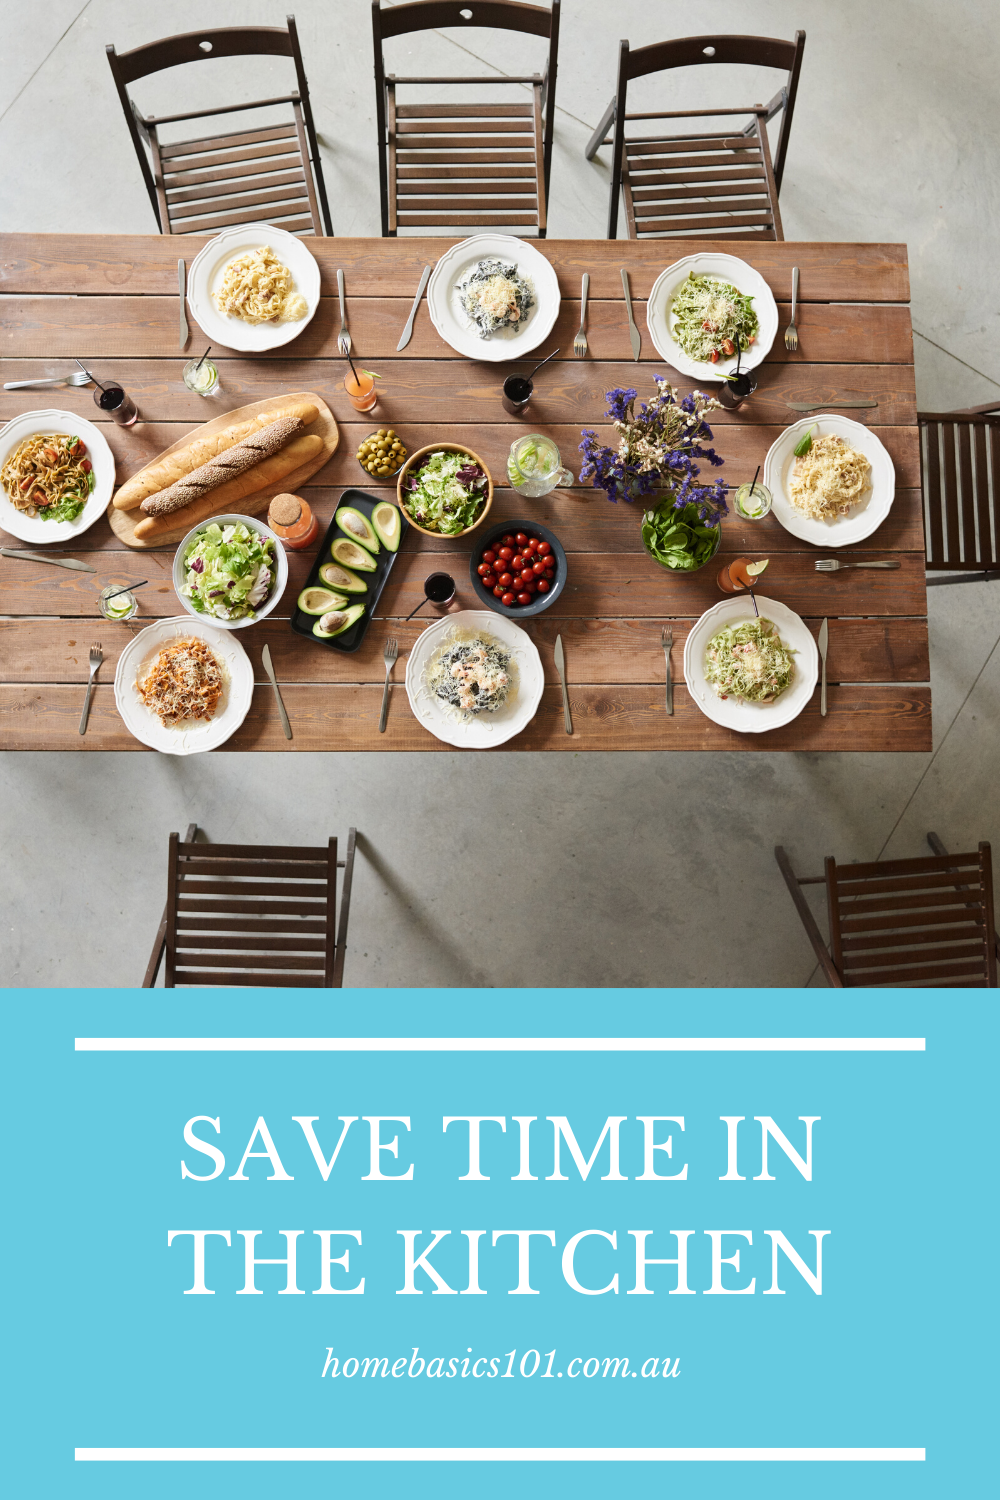 Make Dinner time Simple and quick with these tips